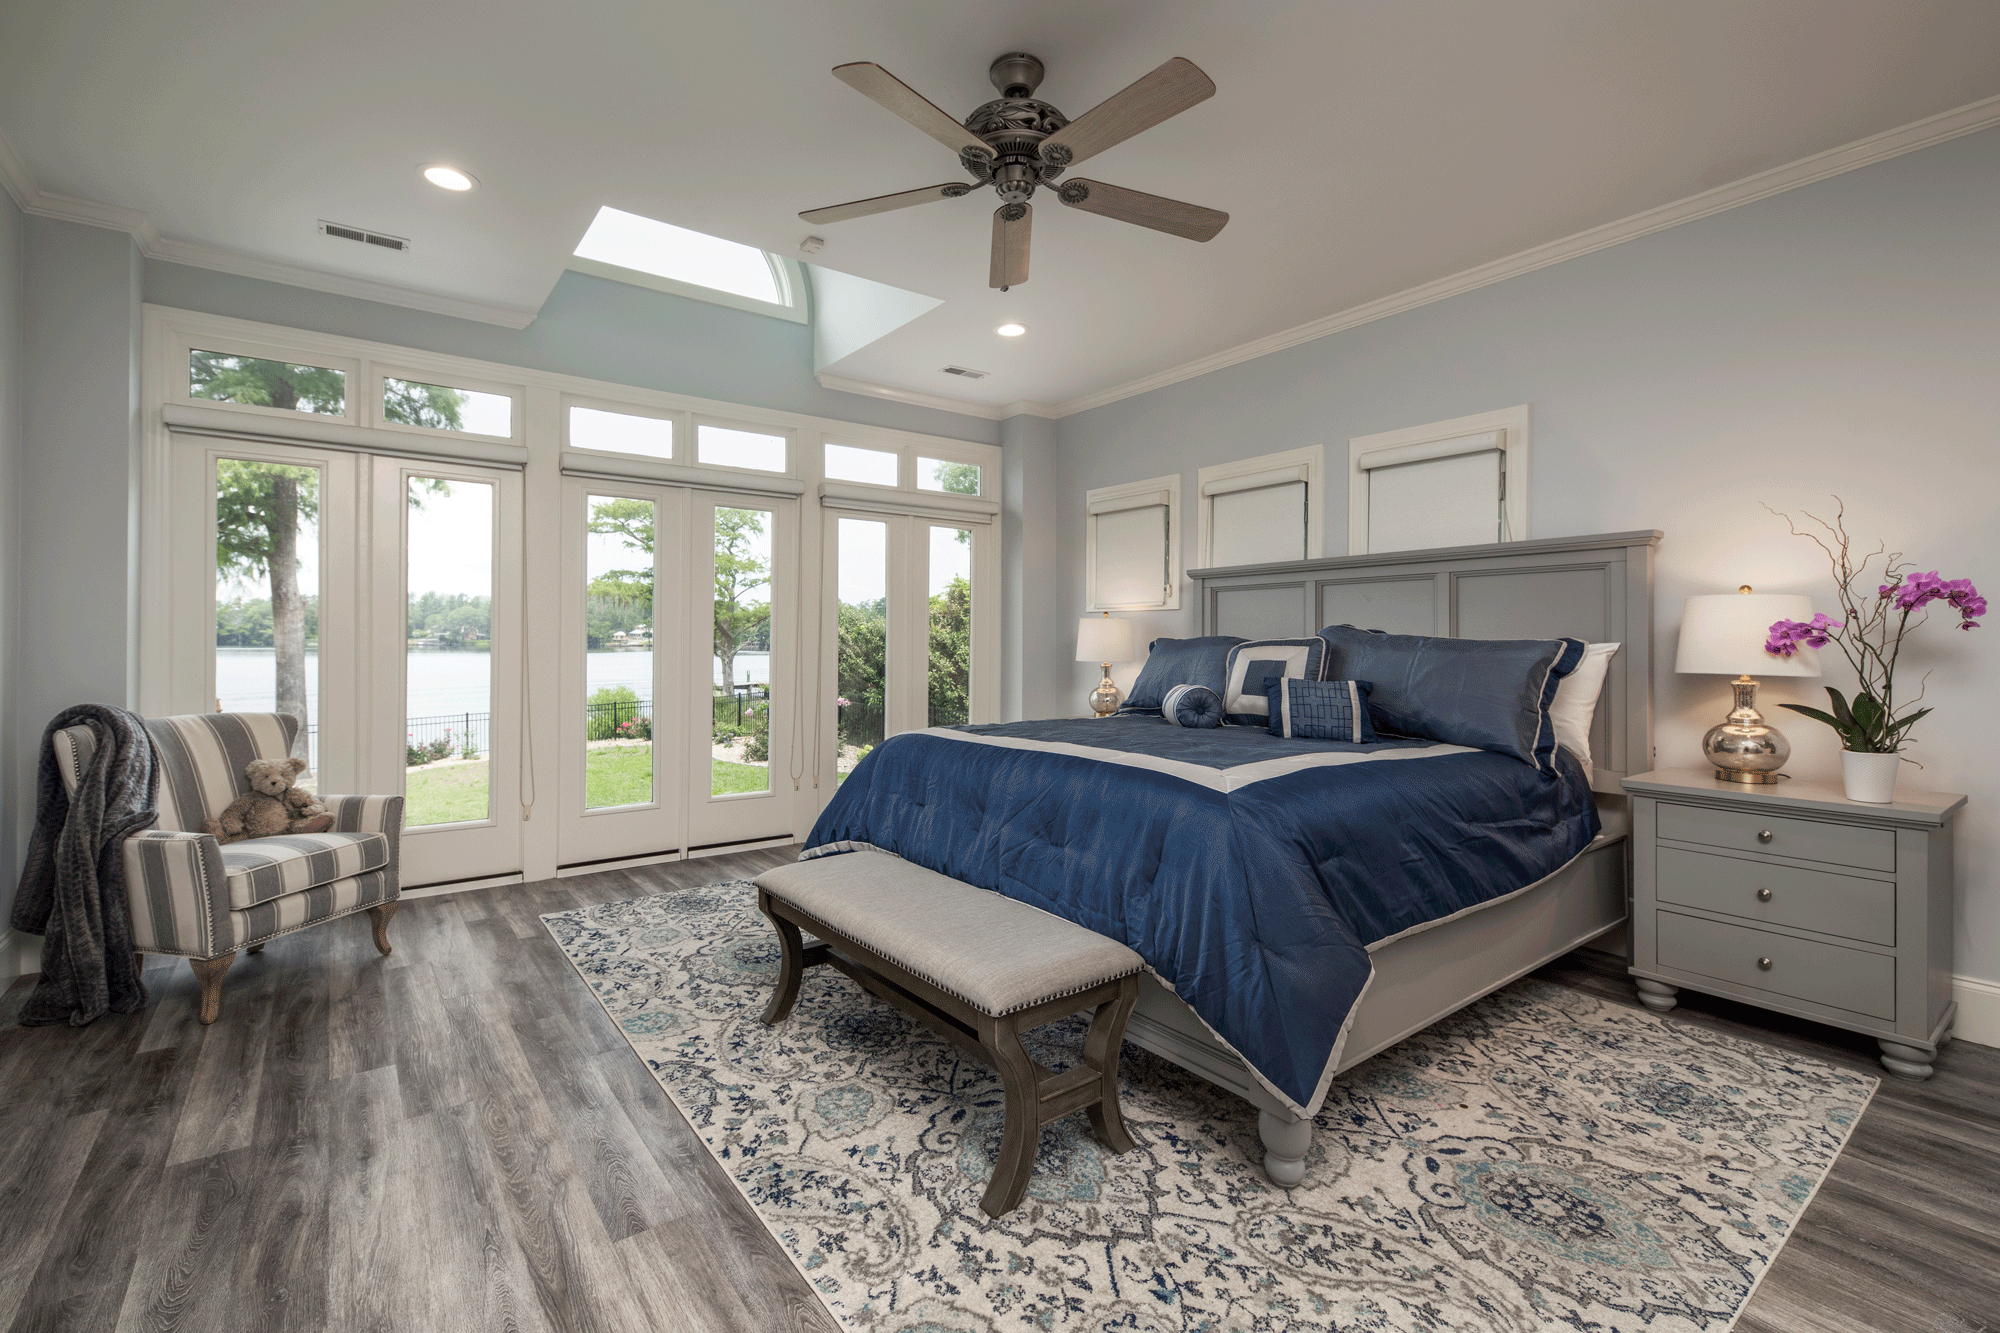 bedroom decor and design with furniture and ceiling fan